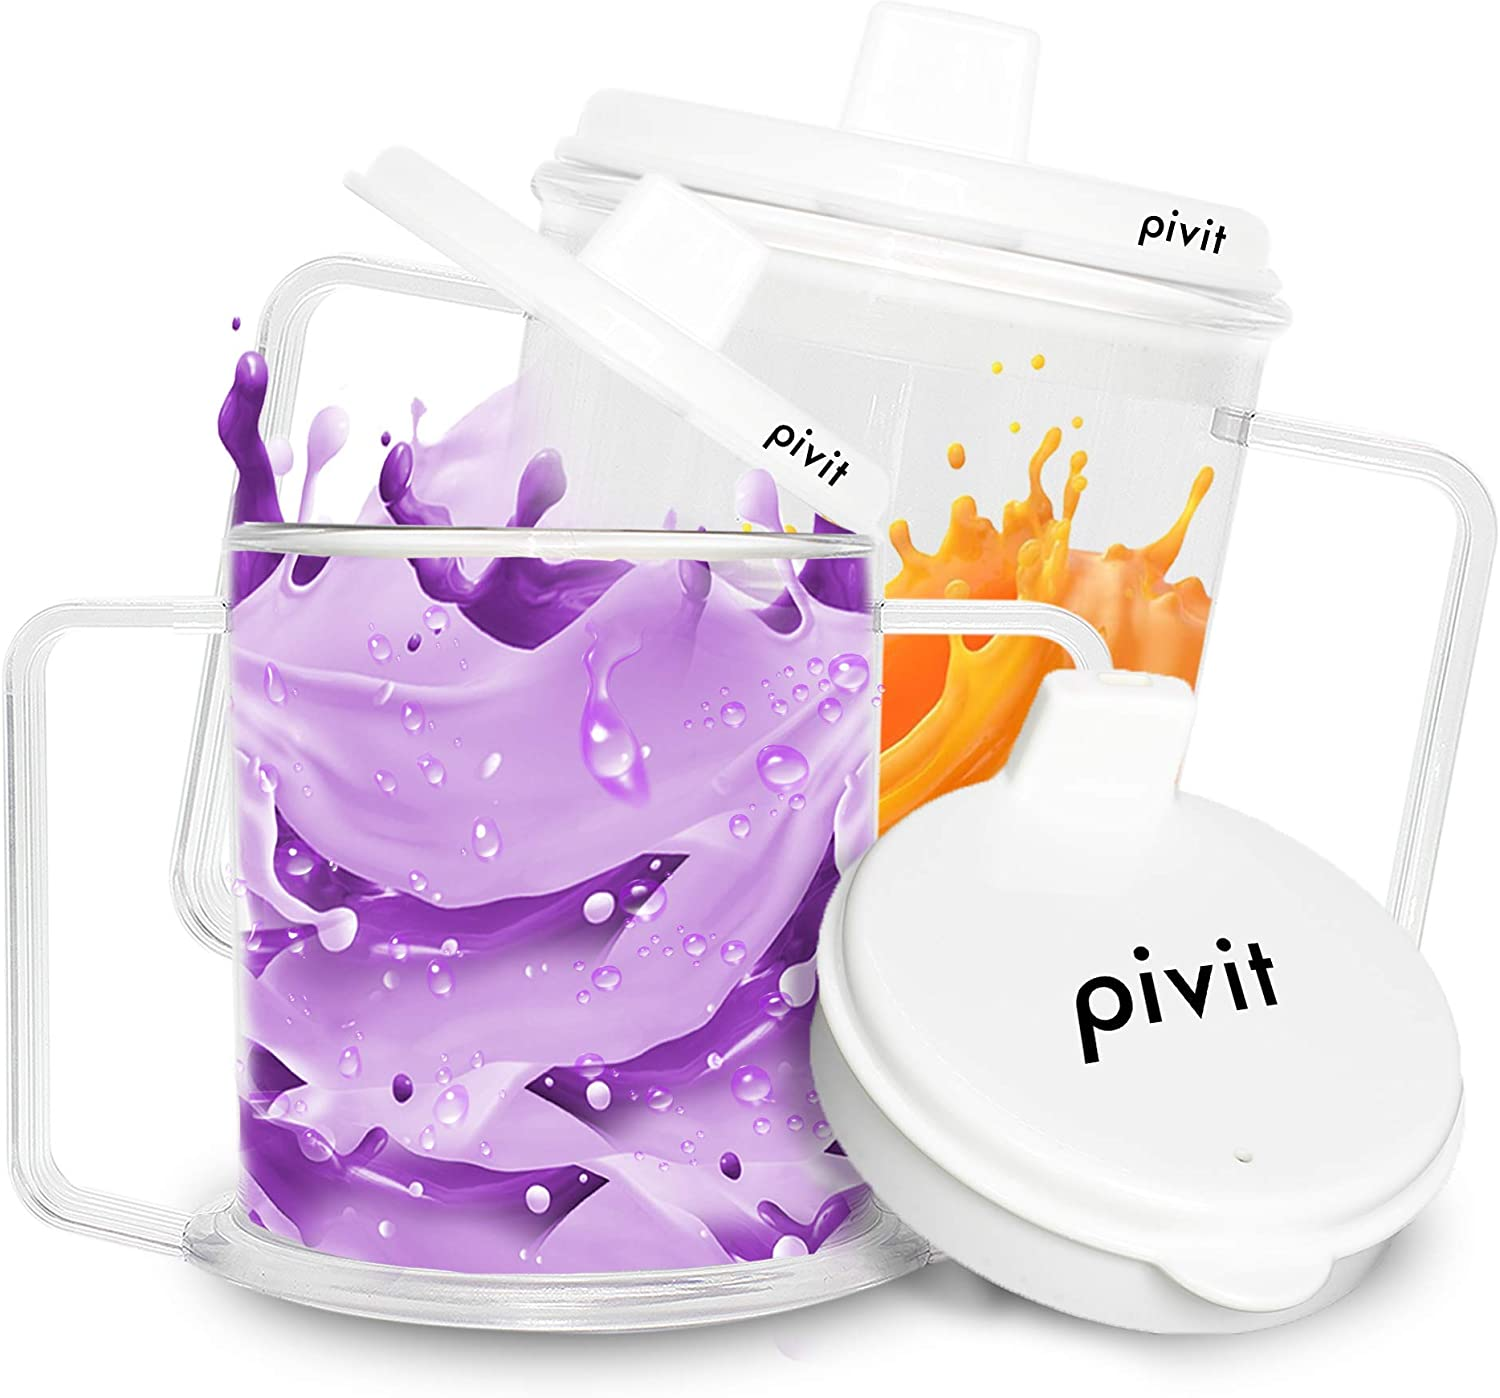 Pivit Adult Flow Control Spill-Proof Sippy Cups | 8 Oz | 2 Pack | Vacuum Feeding Cup with Lids & Handles for Drinking Without Sitting Up | Two-Handled No Spill Plastic Mug for Elderly & Parkinsons